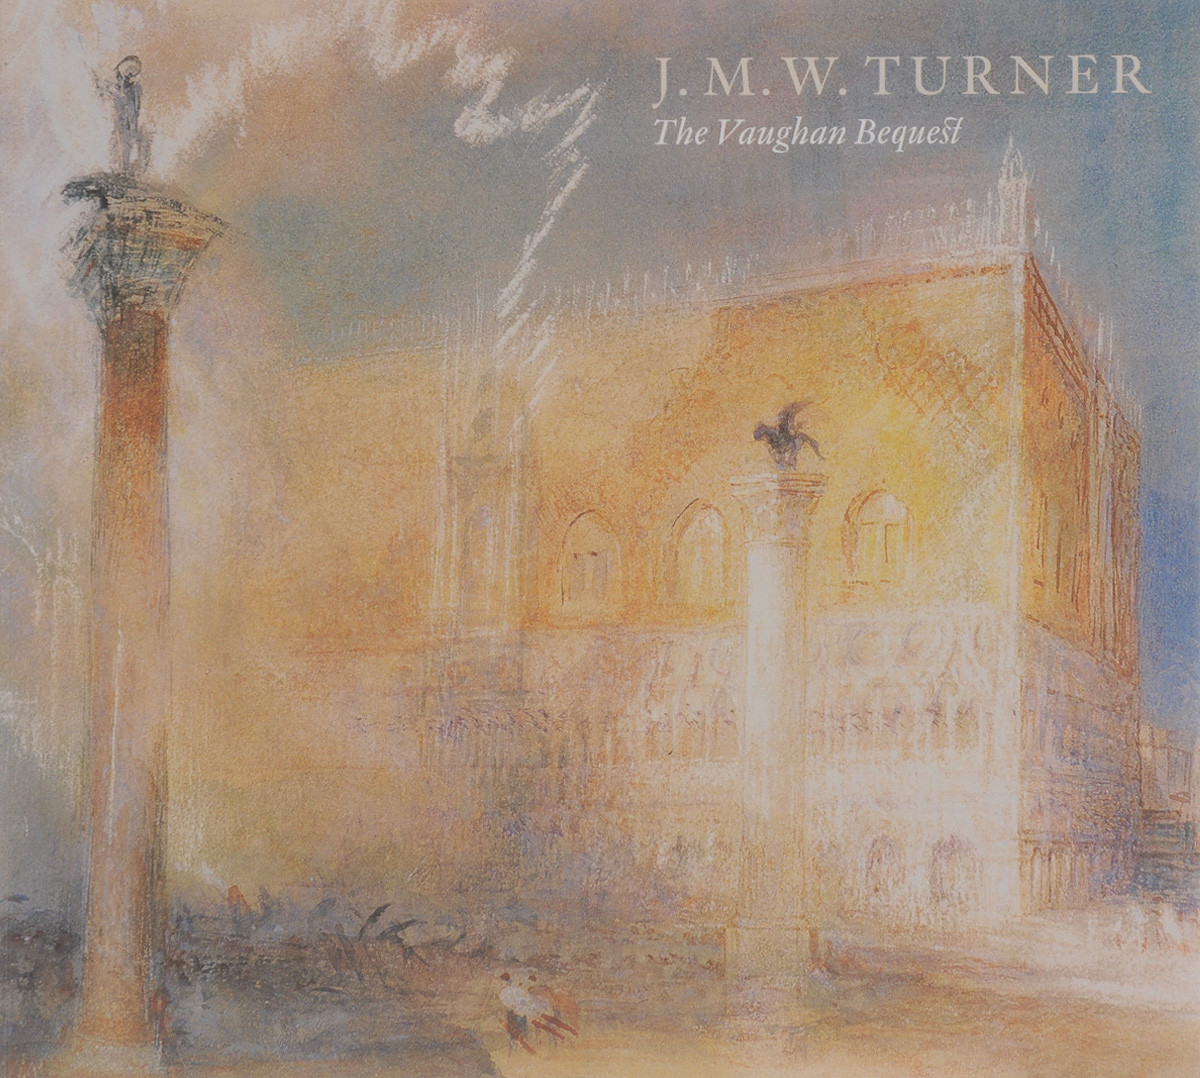 J. M. W. Turner: The Vaughan Bequest verne j journey to the centre of the earth